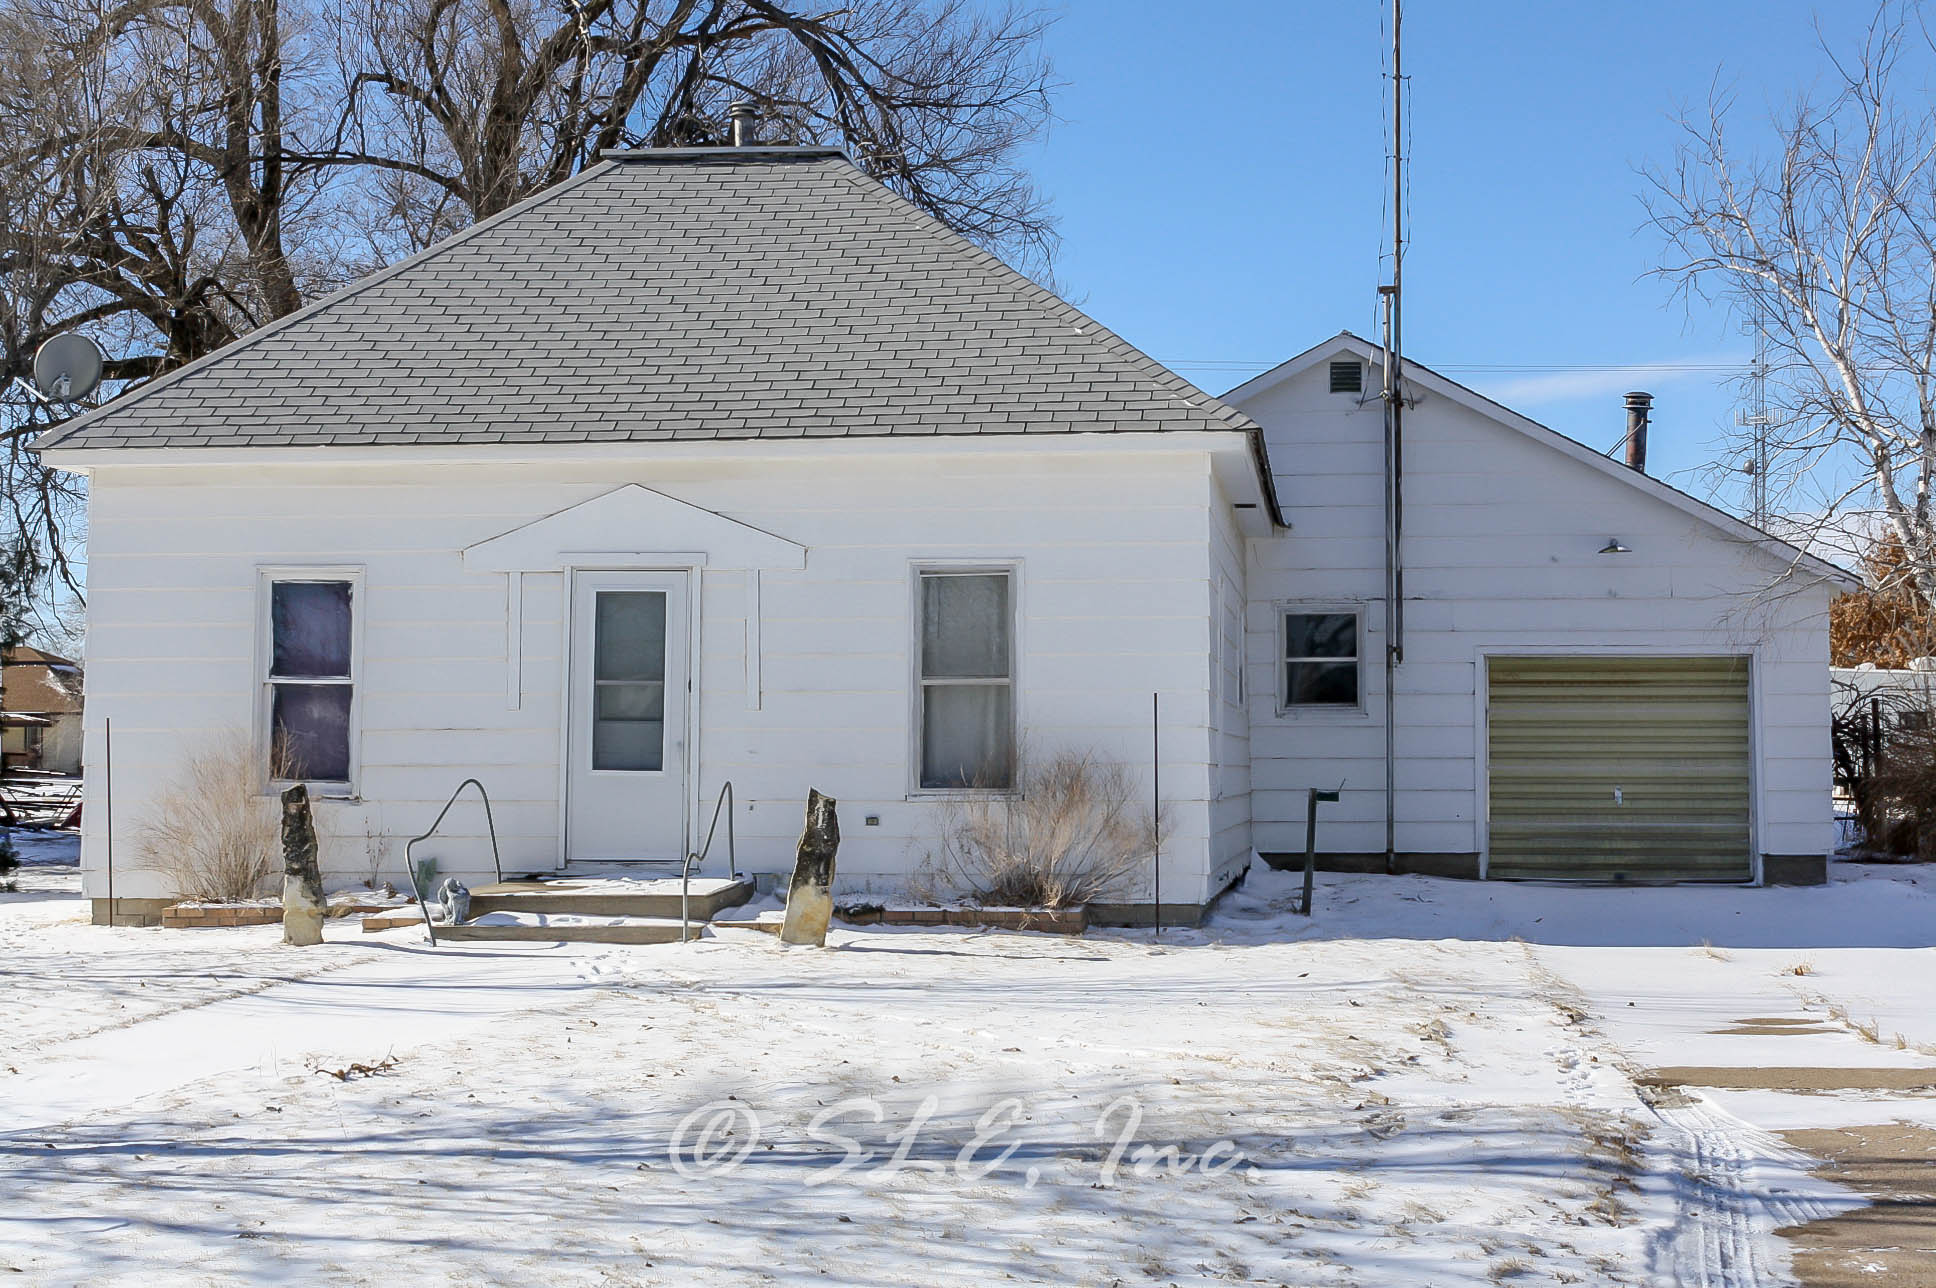 706 N Exchange, St. John, Kansas 67576